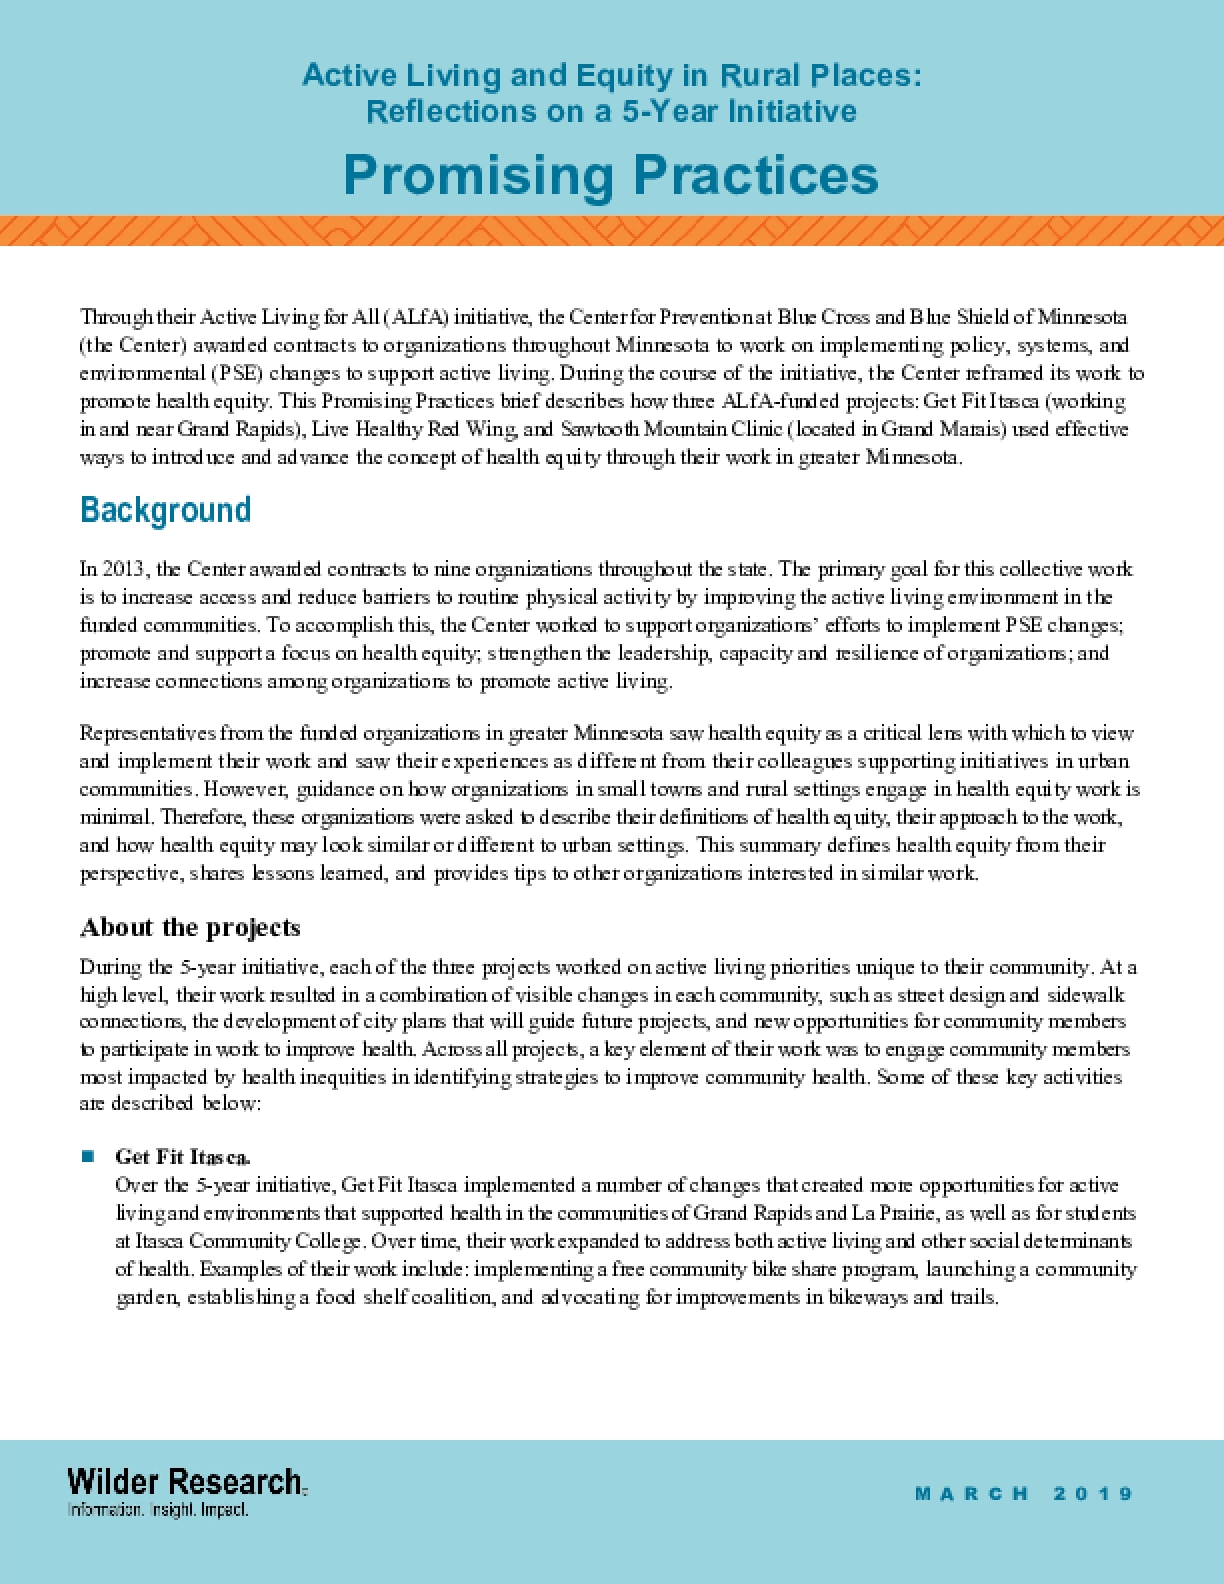 Promising Practices: Active Living and Equity in Rural Places: Reflections on a 5-Year Initiative